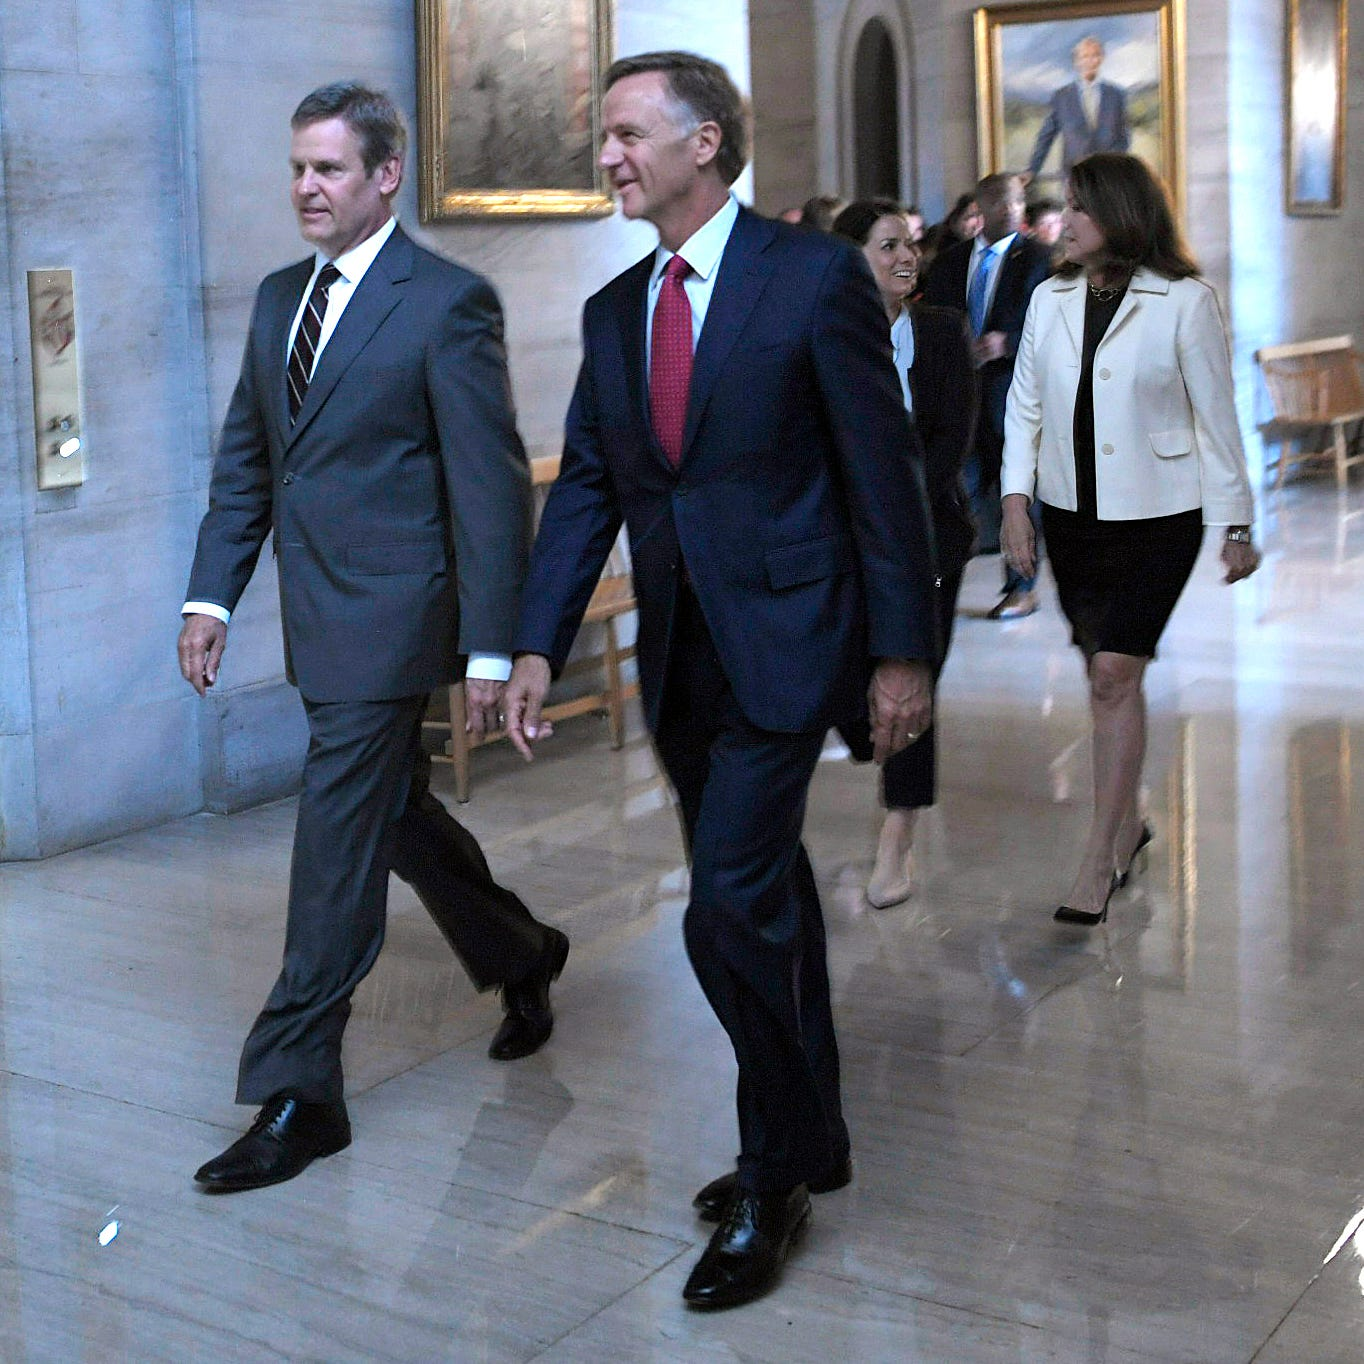 Governor-elect Bill Lee and his wife, Maria, and Governor Bill Haslam and his wife, Crissy, walk together to a joint press conference on Wednesday, Nov. 7, 2018 at the Tennessee State Capitol.